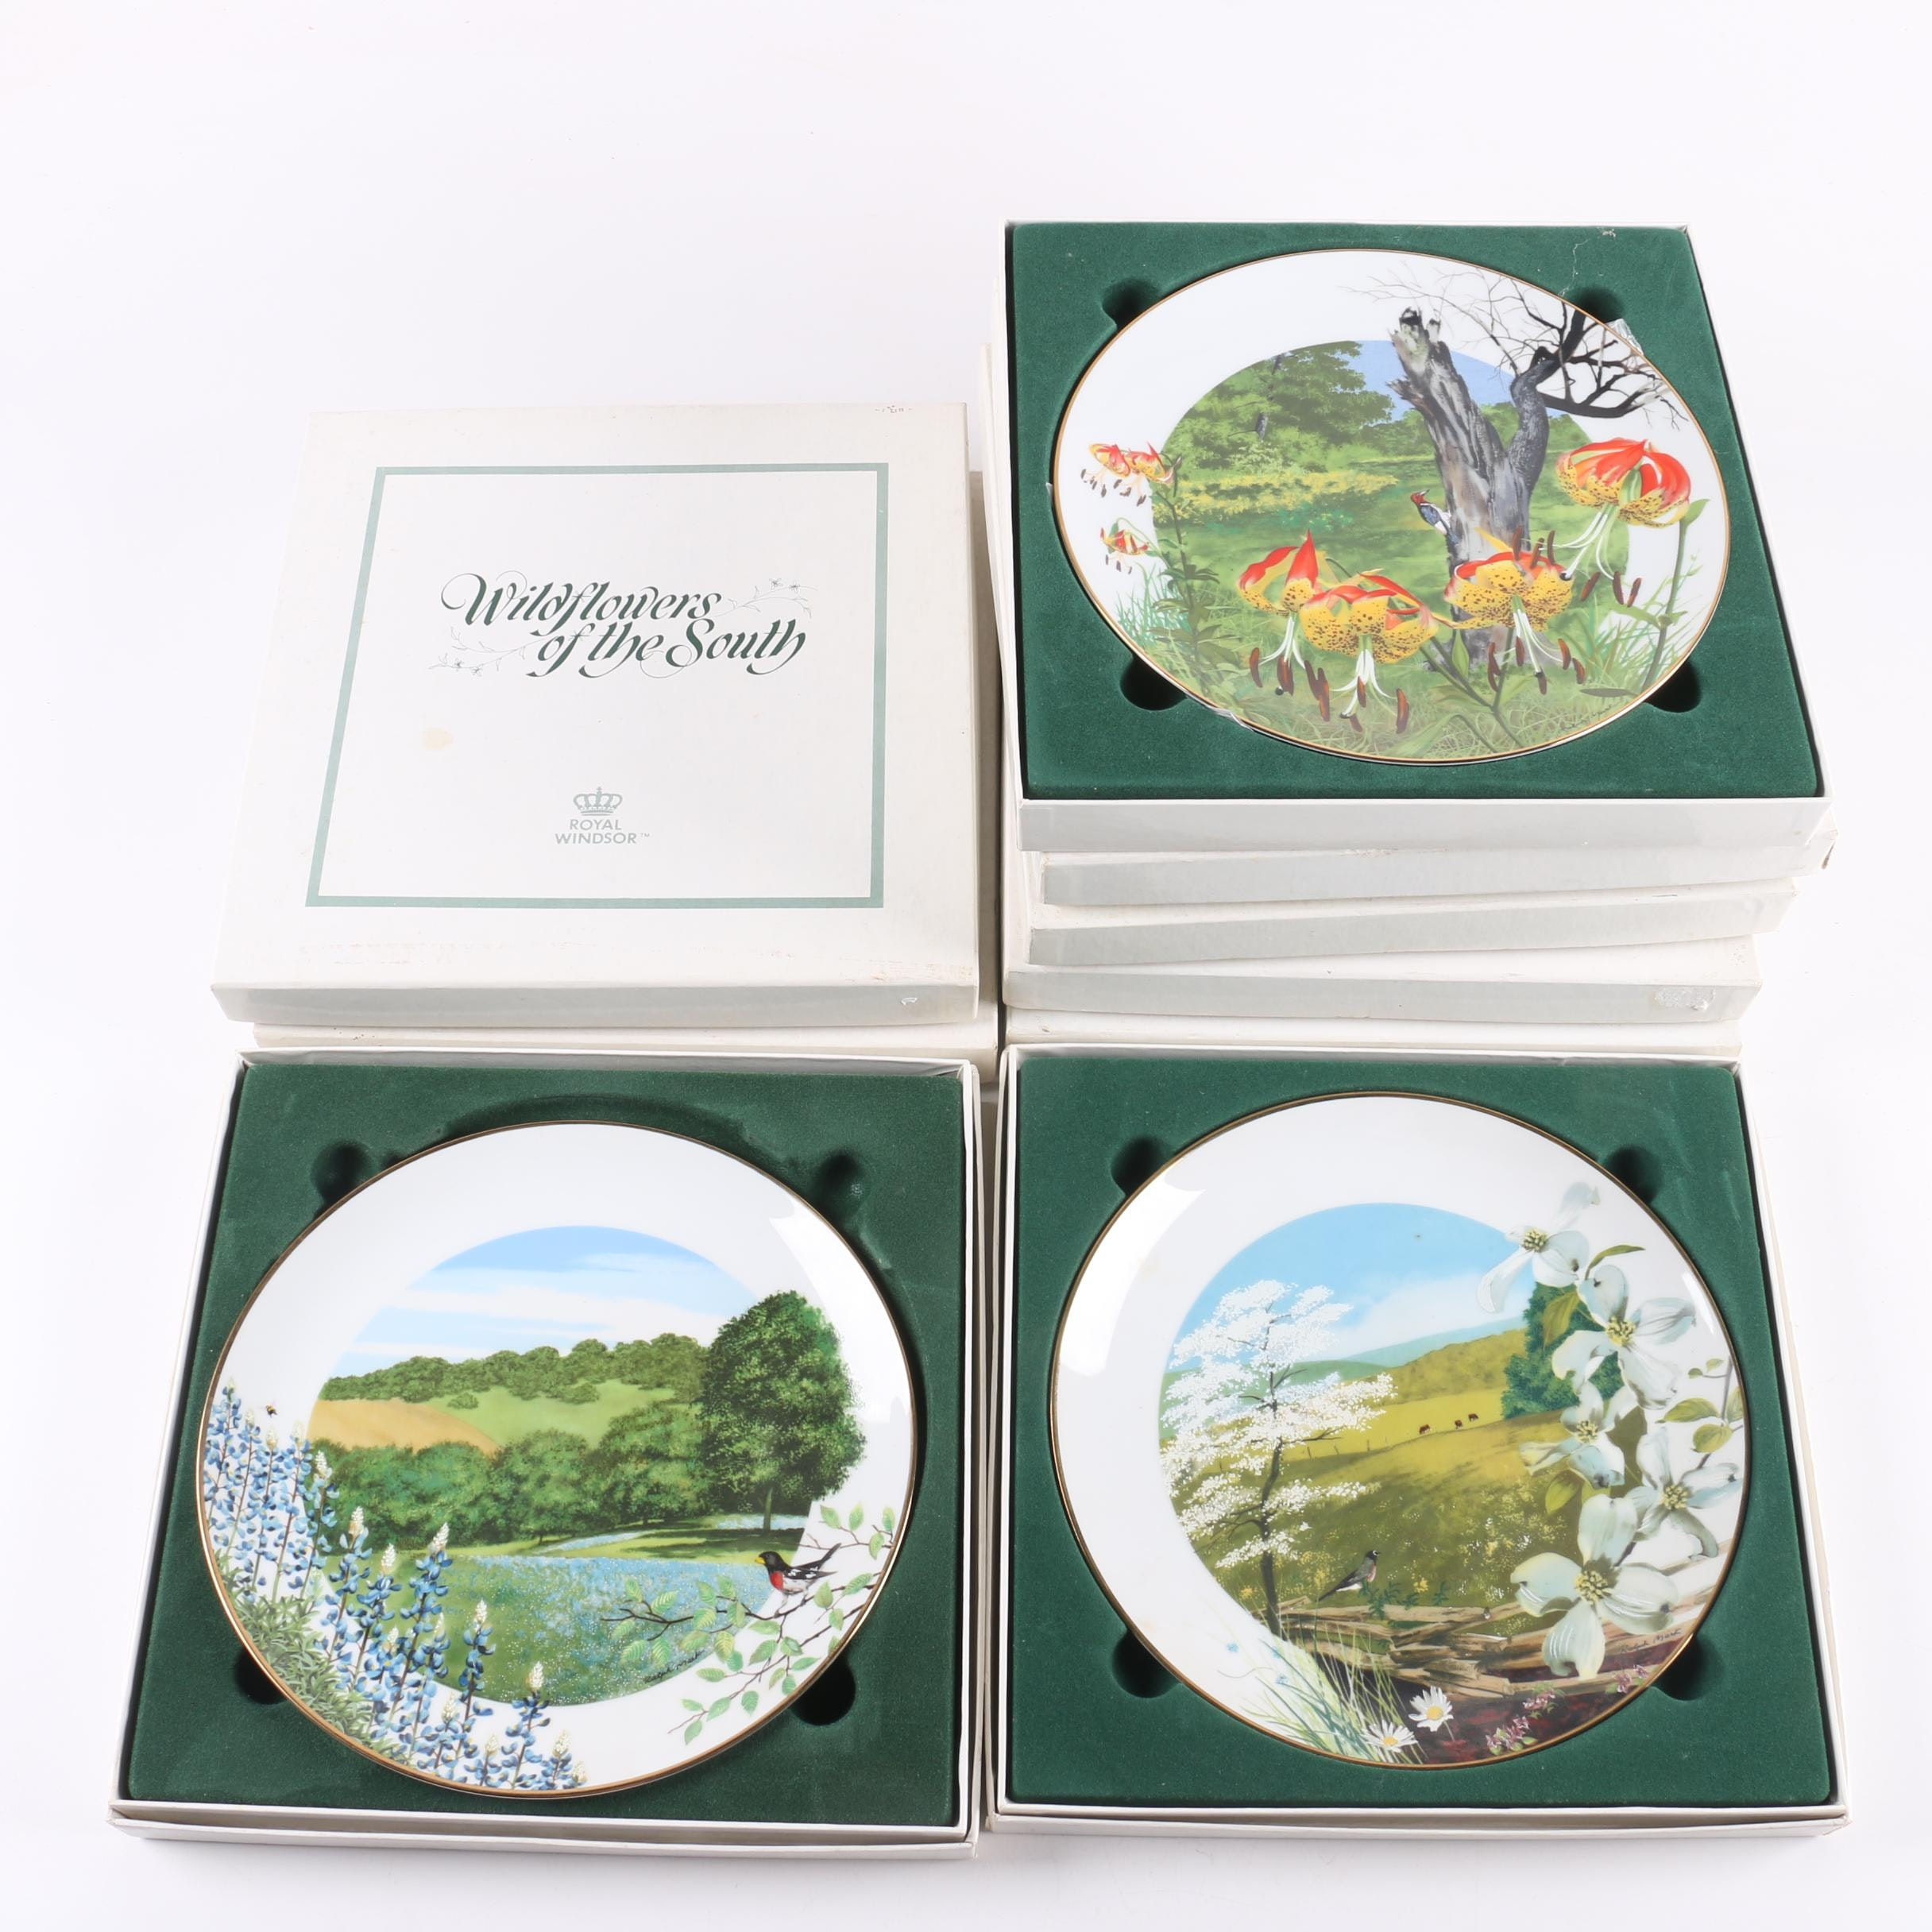 """Royal Windsor """"Wildflowers of the South"""" Porcelain Collector's Plates"""